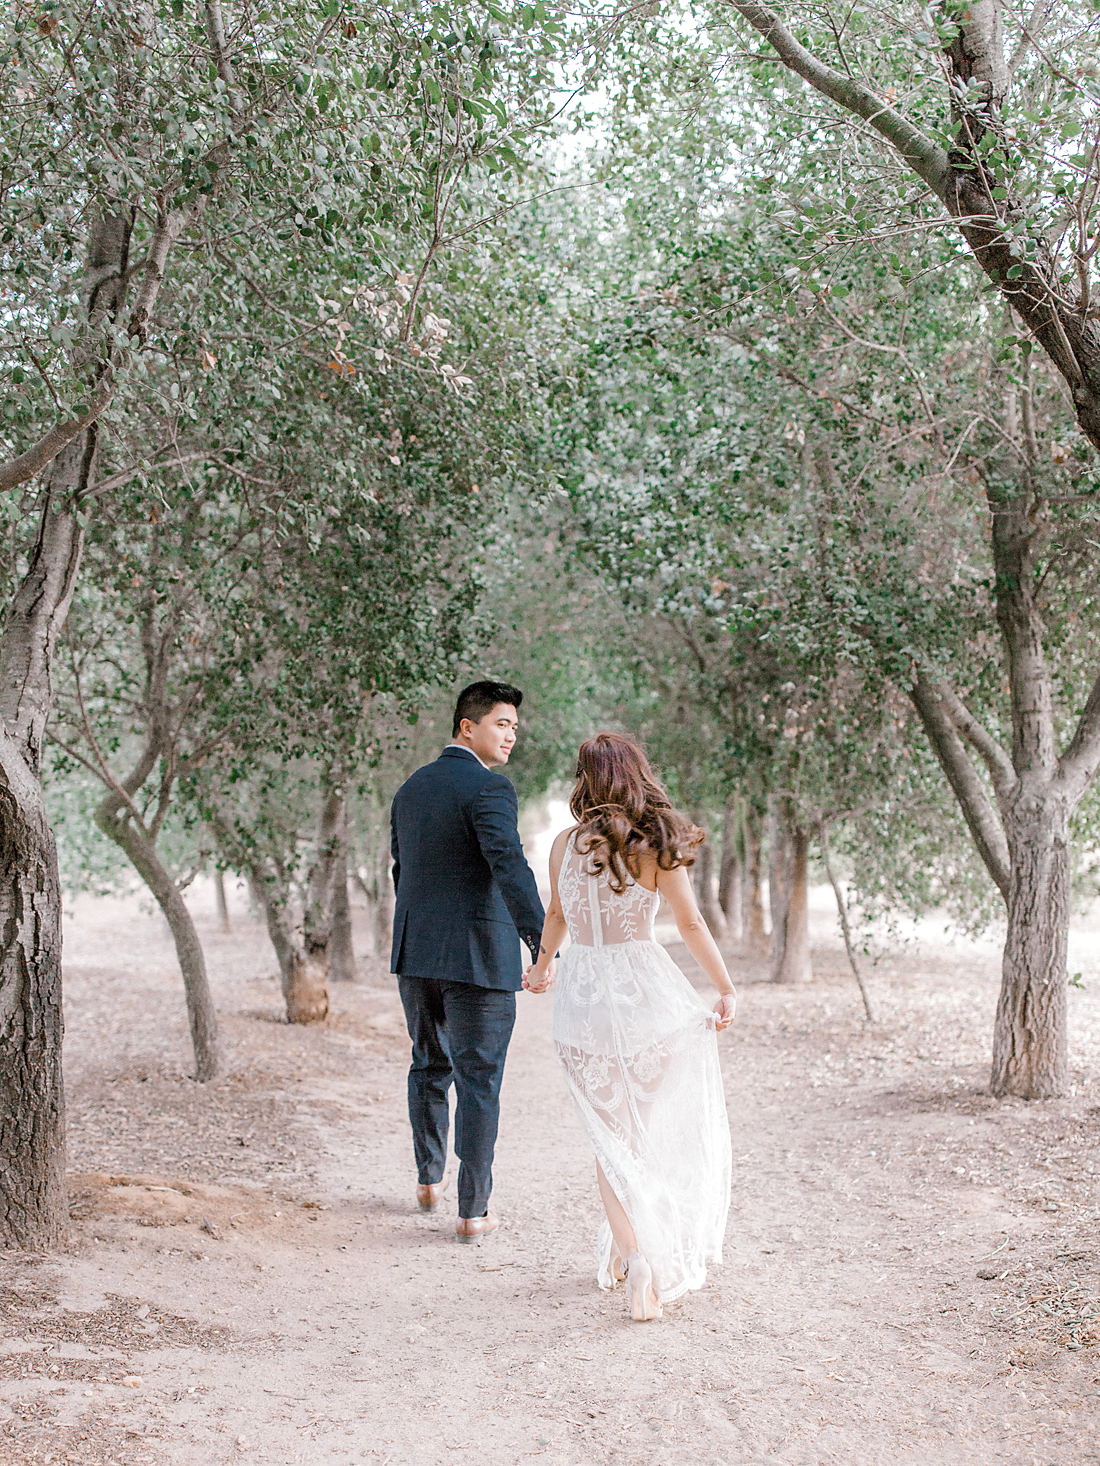 Babsie-Ly-Photography-Jenelle-Joshua-Engagement-Iron-Mountain-San-Diego-001